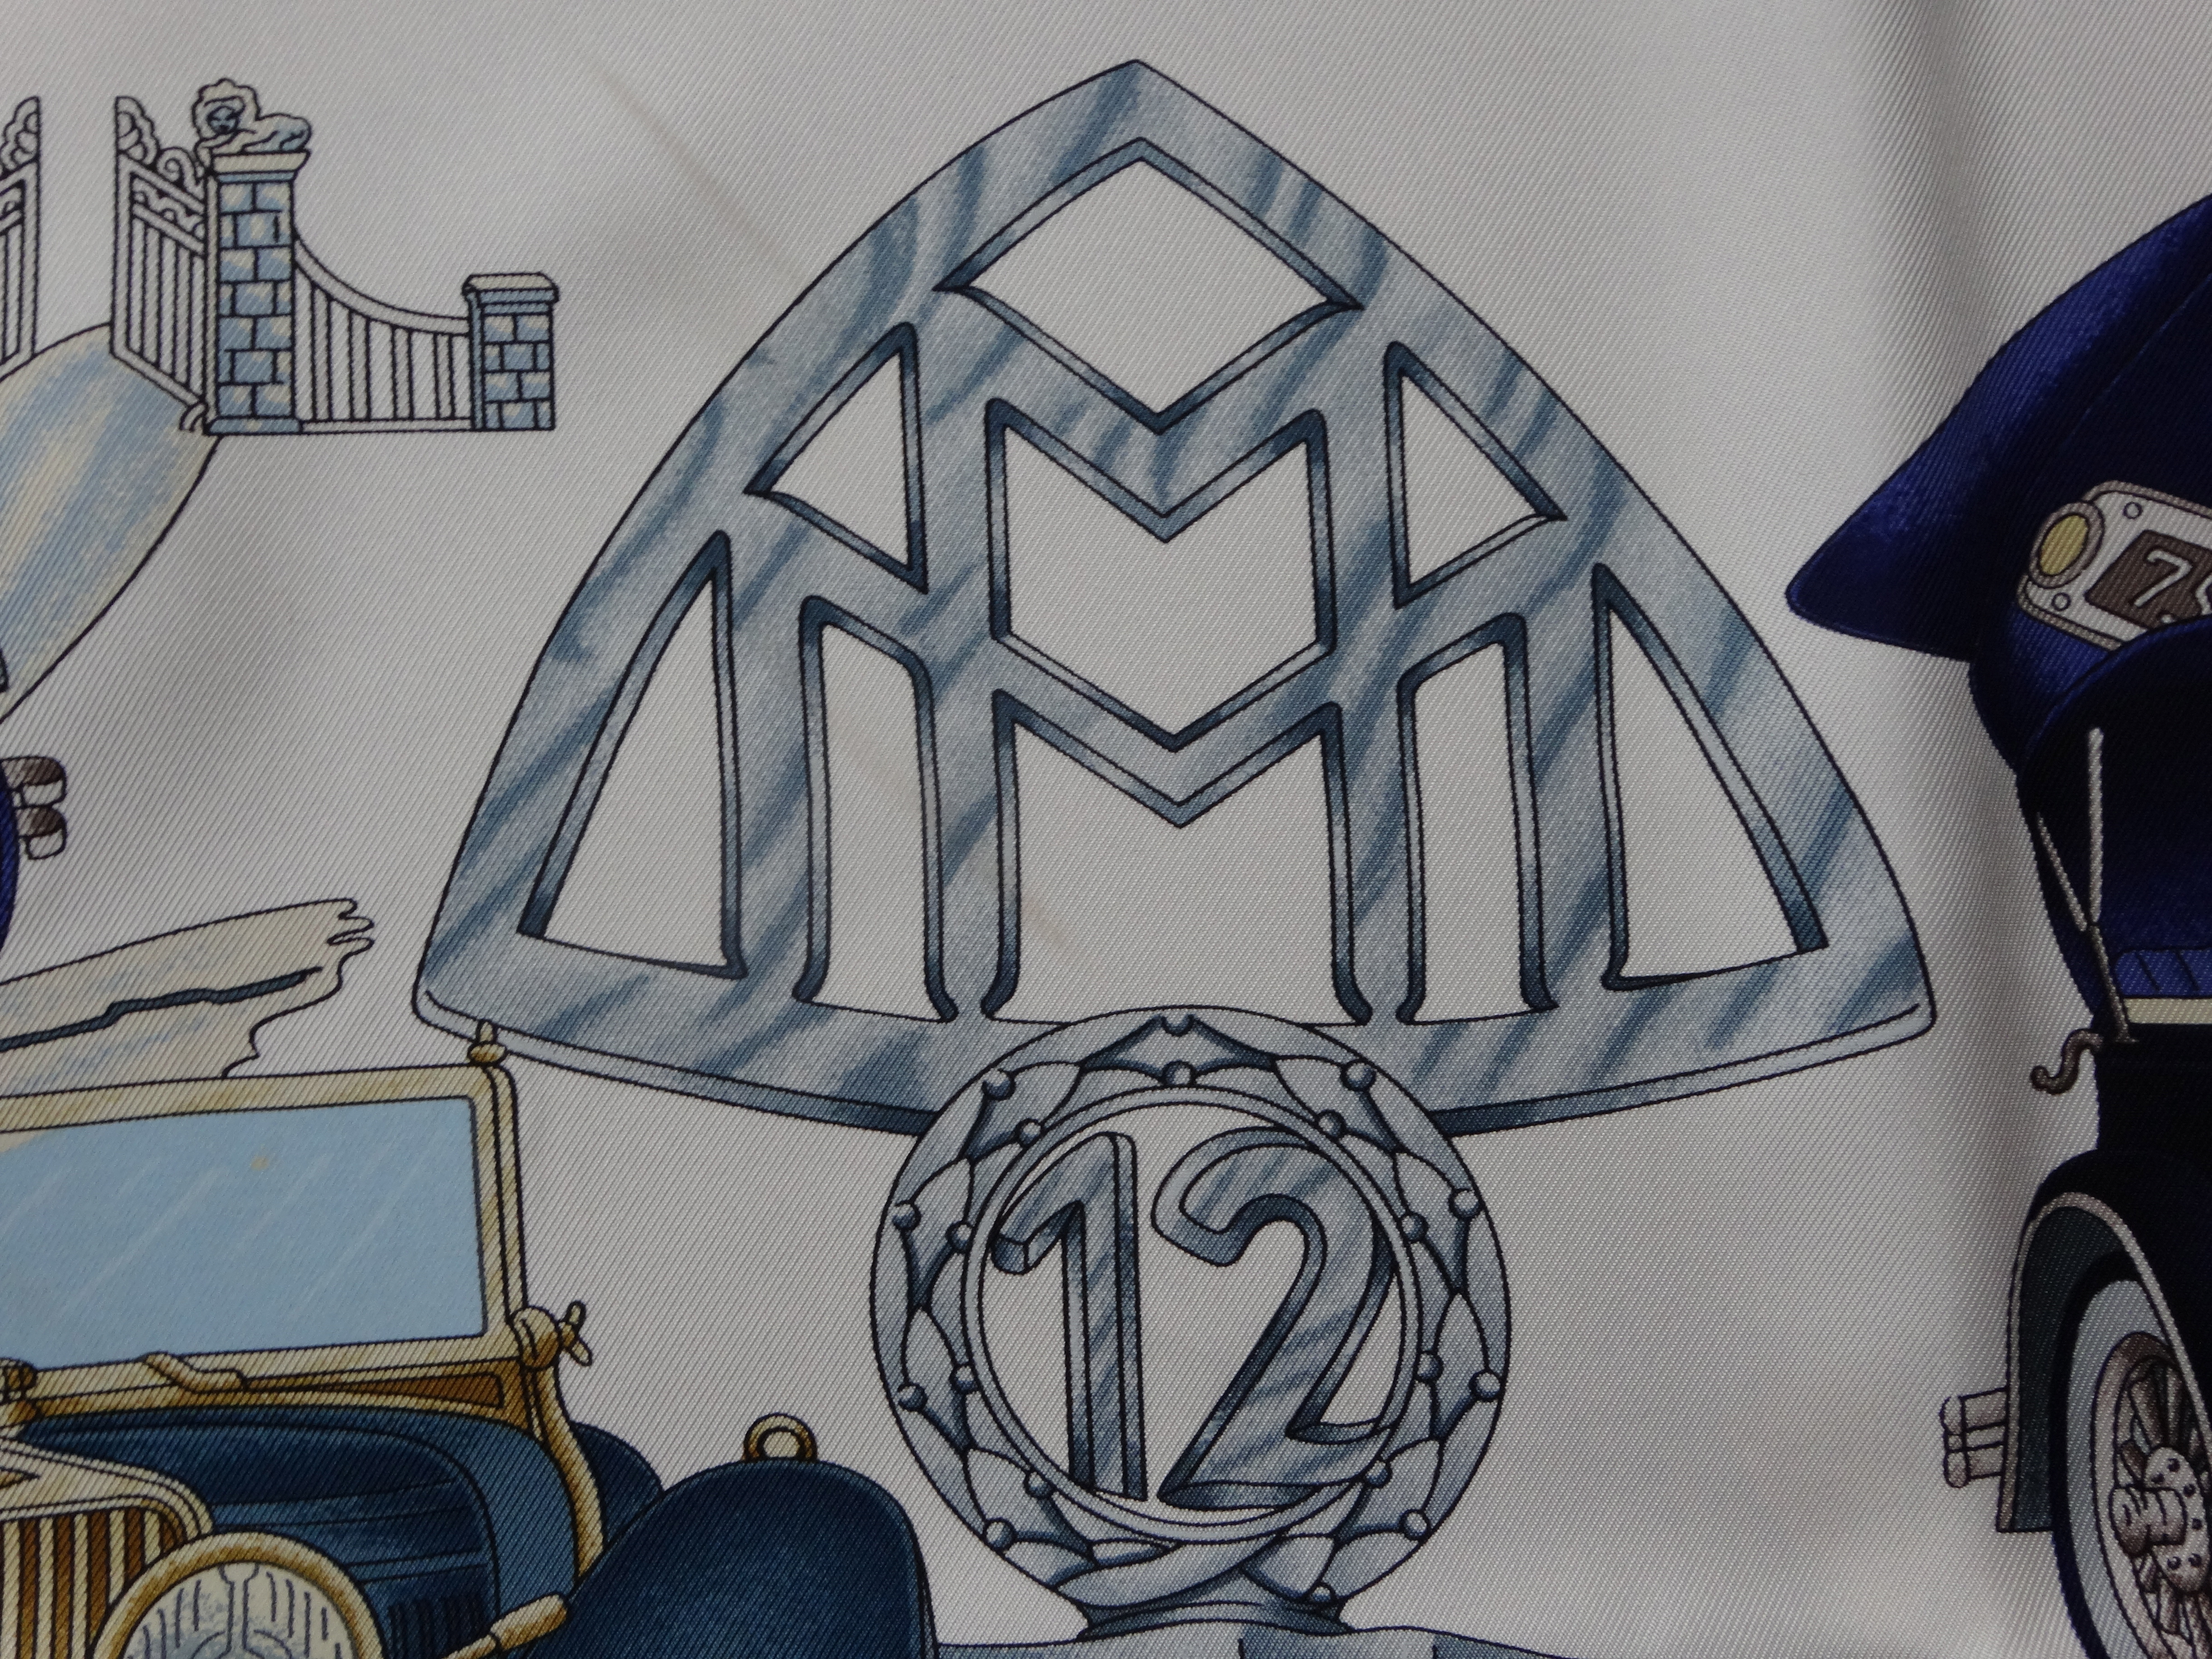 Hermes Automobile Maybach Logo